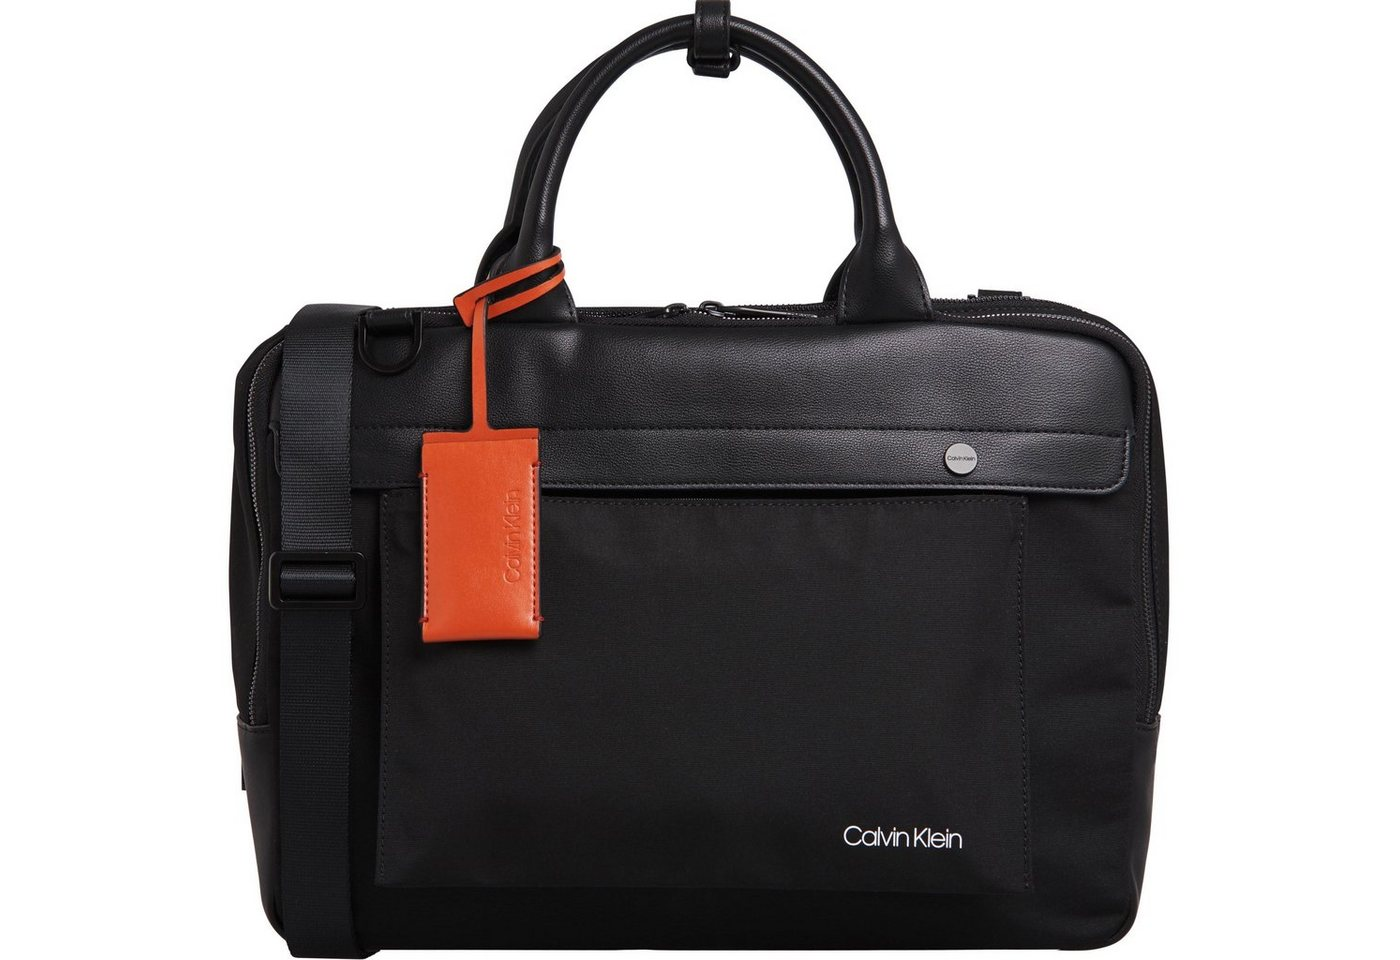 calvin klein -  Aktentasche »UNITED NYLON 2G LAPTOP BAG«, mit Laptopfach